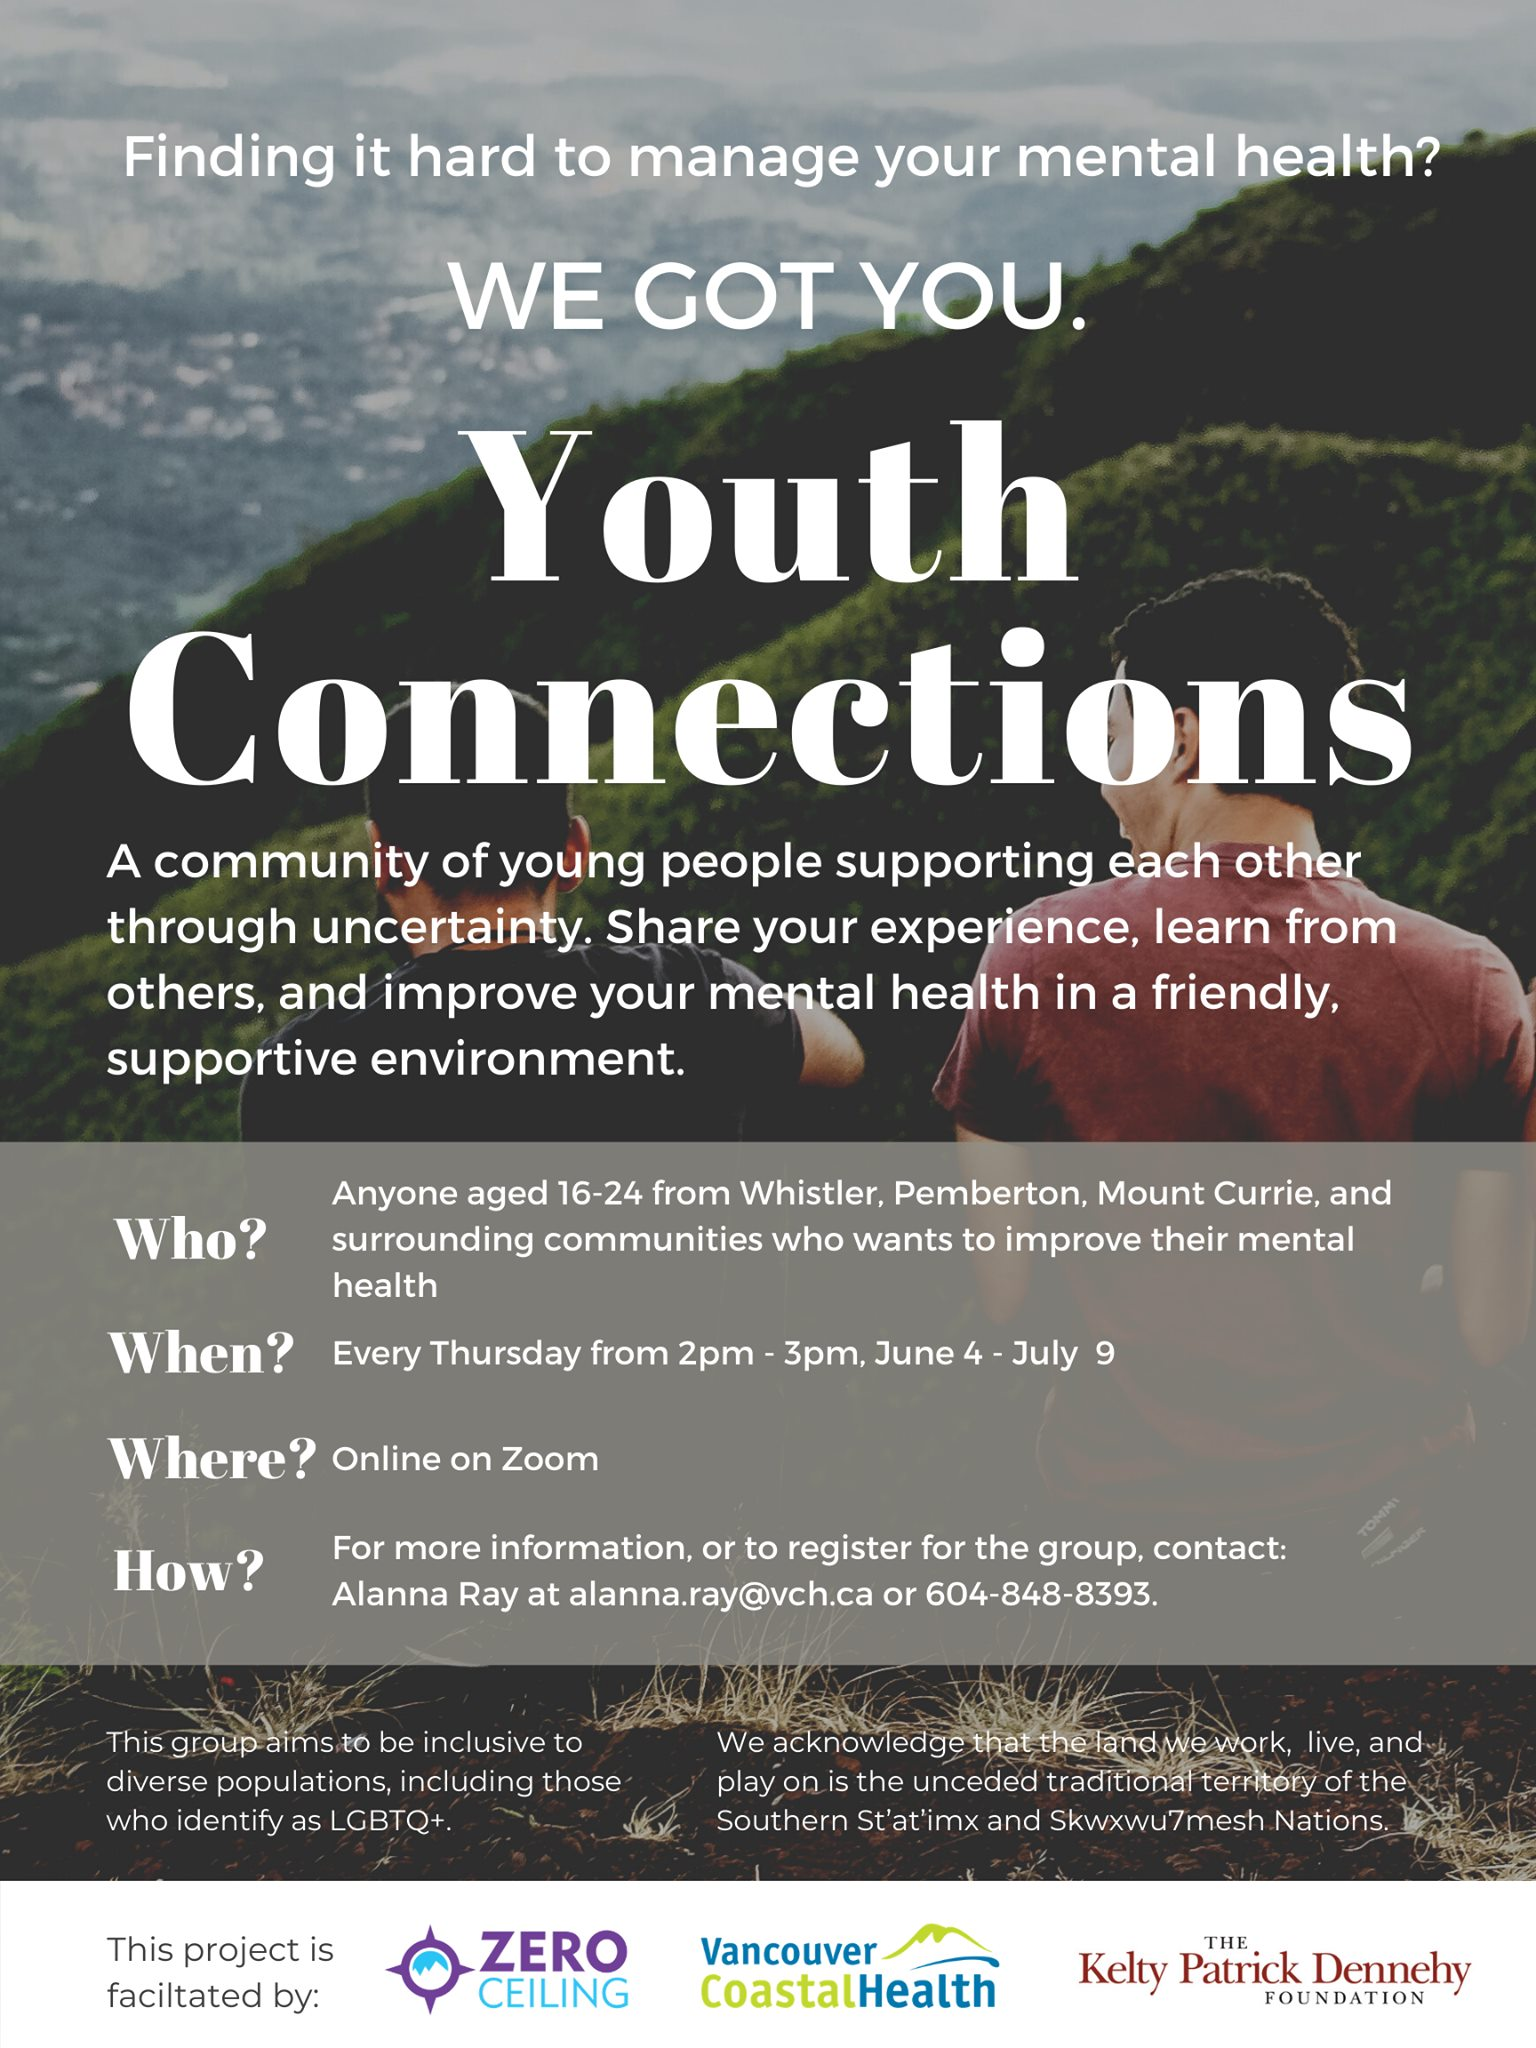 Youth Connections online mental health peer support group starts June 4!